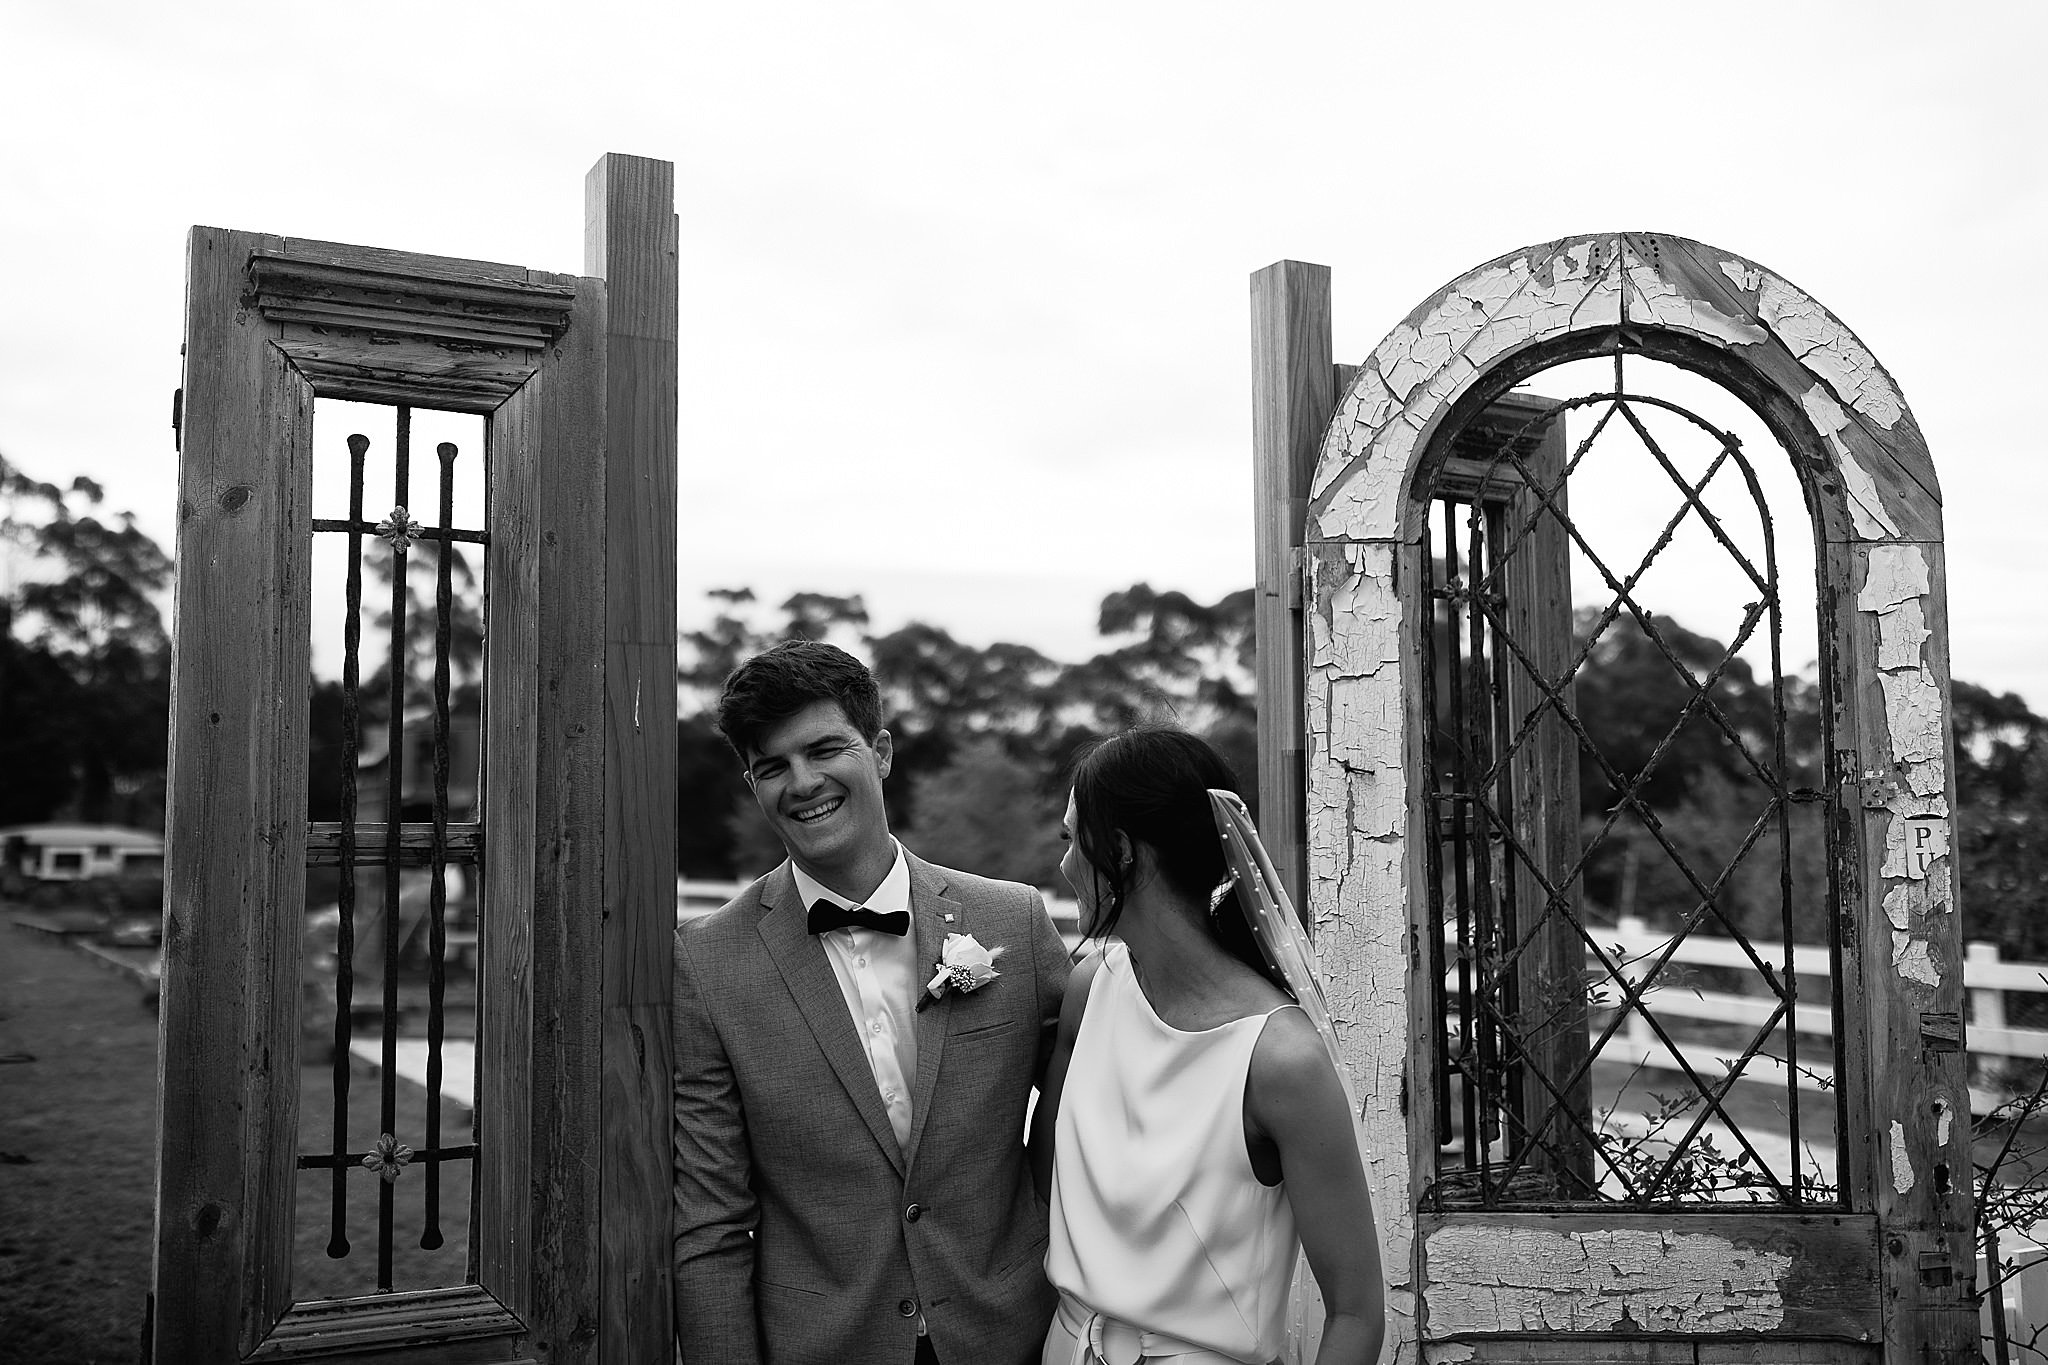 The Woods Farm,Canberra Photography,country wedding,ACT wedding photographer,ACT weddings,Canberra Wedding Photographer,Canberra Wedding Photography,canberra weddings,destination wedding,South Coast Wedding,Keepsakephoto by the Keeffes,Jervis Bay Wedding,destination wedding photography,